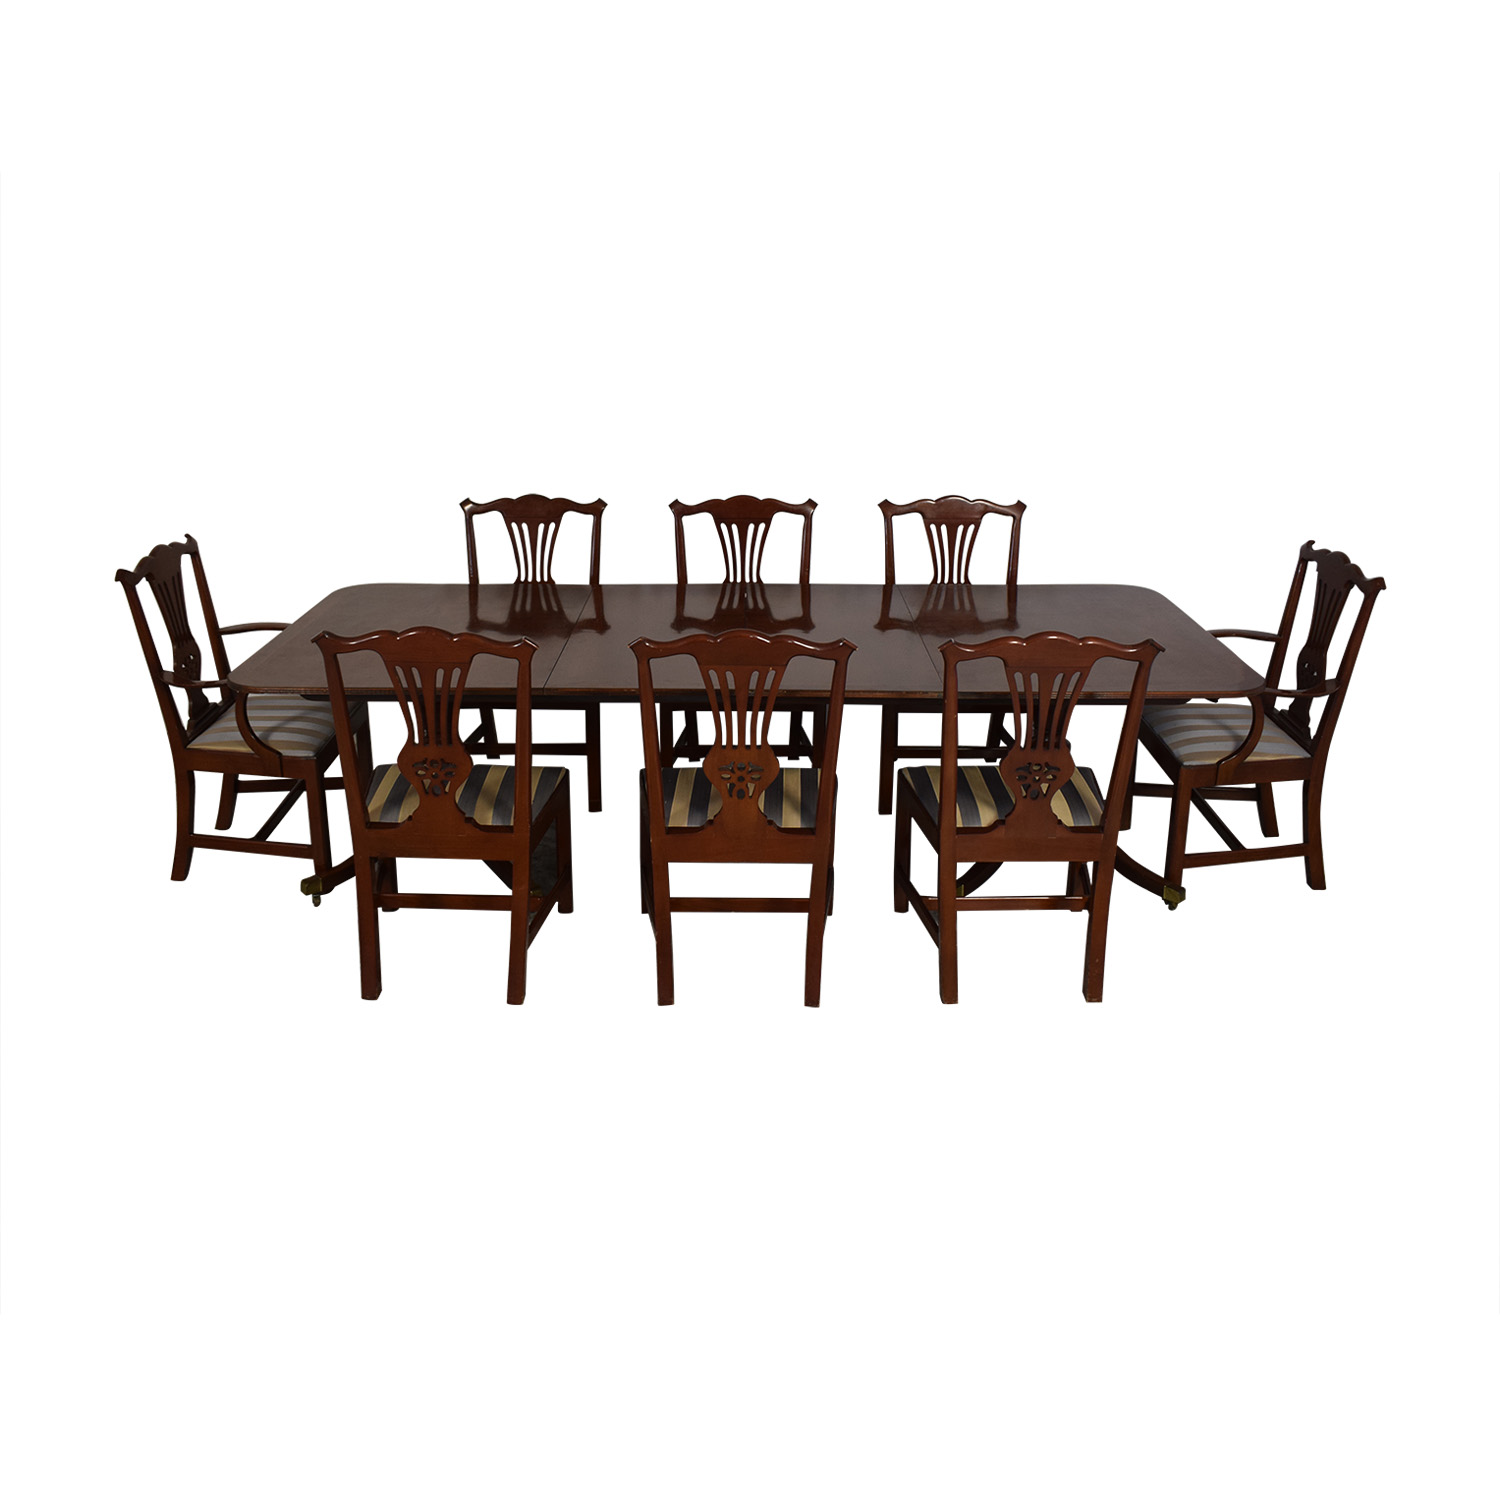 Baker Furniture Dining Room Table And Chairs Brown